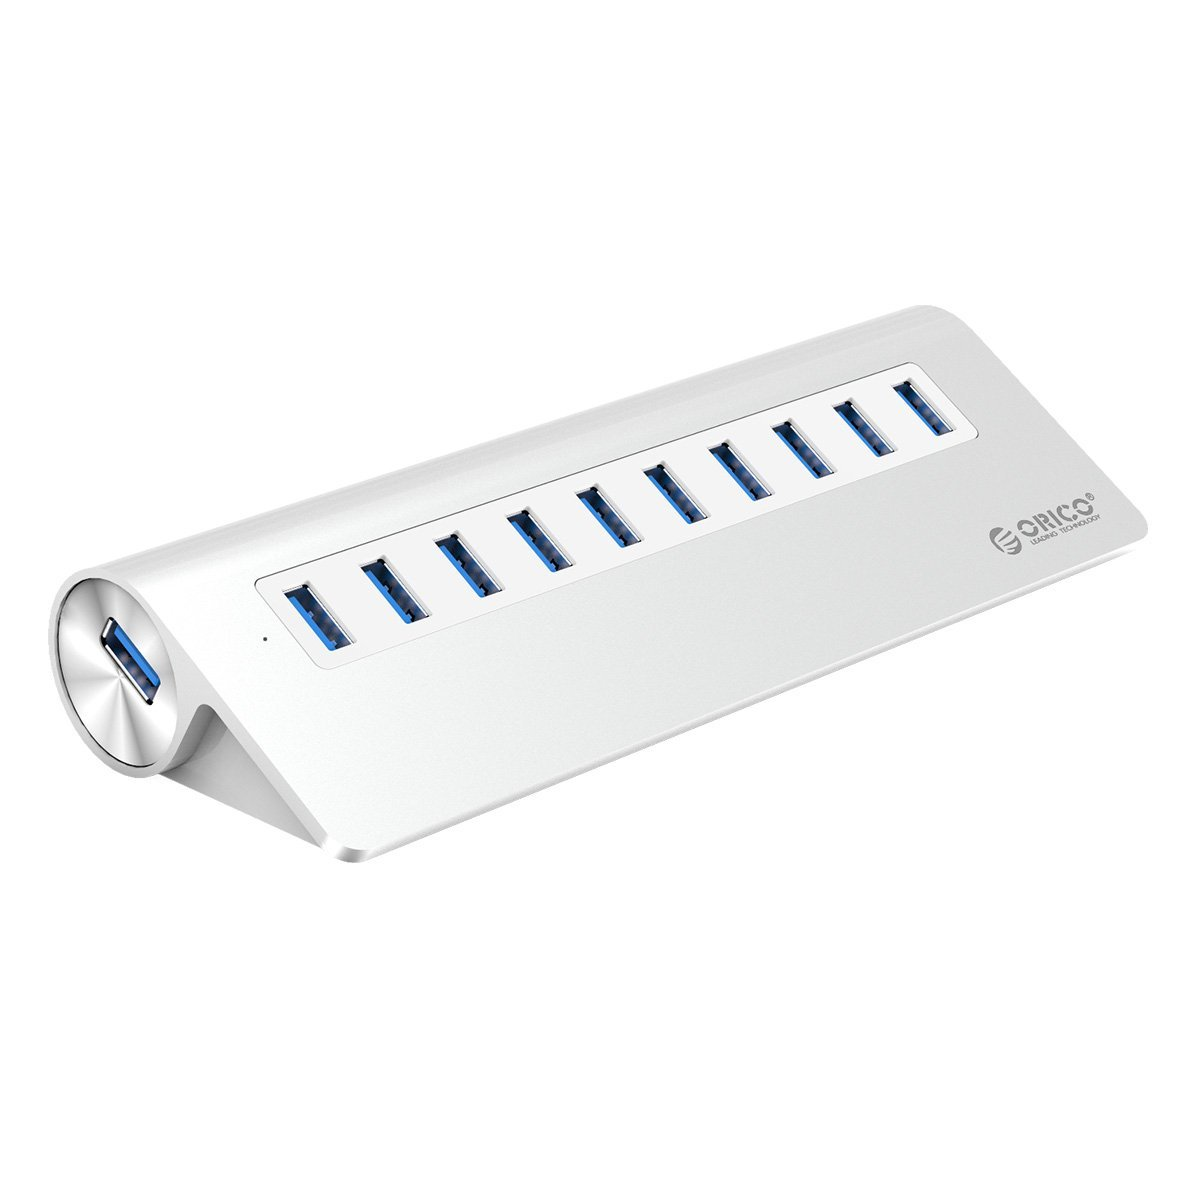 ORICO Aluminum Super Speed 3.0 USB Hub for Mac – Available in 2 Port Number Options